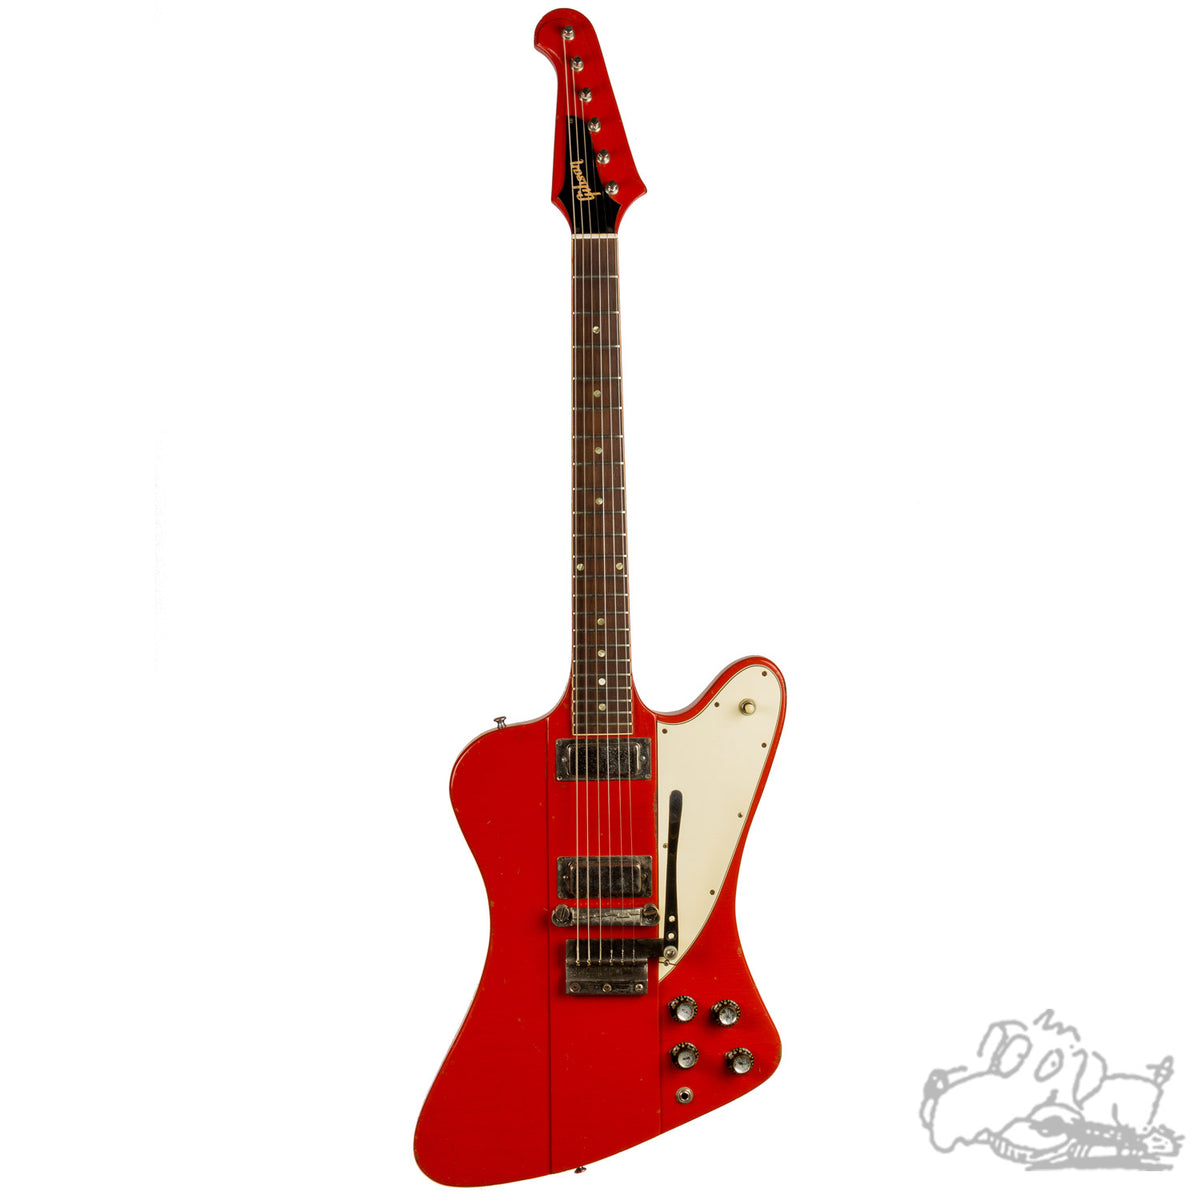 1965 Gibson Firebird III in Ember Red